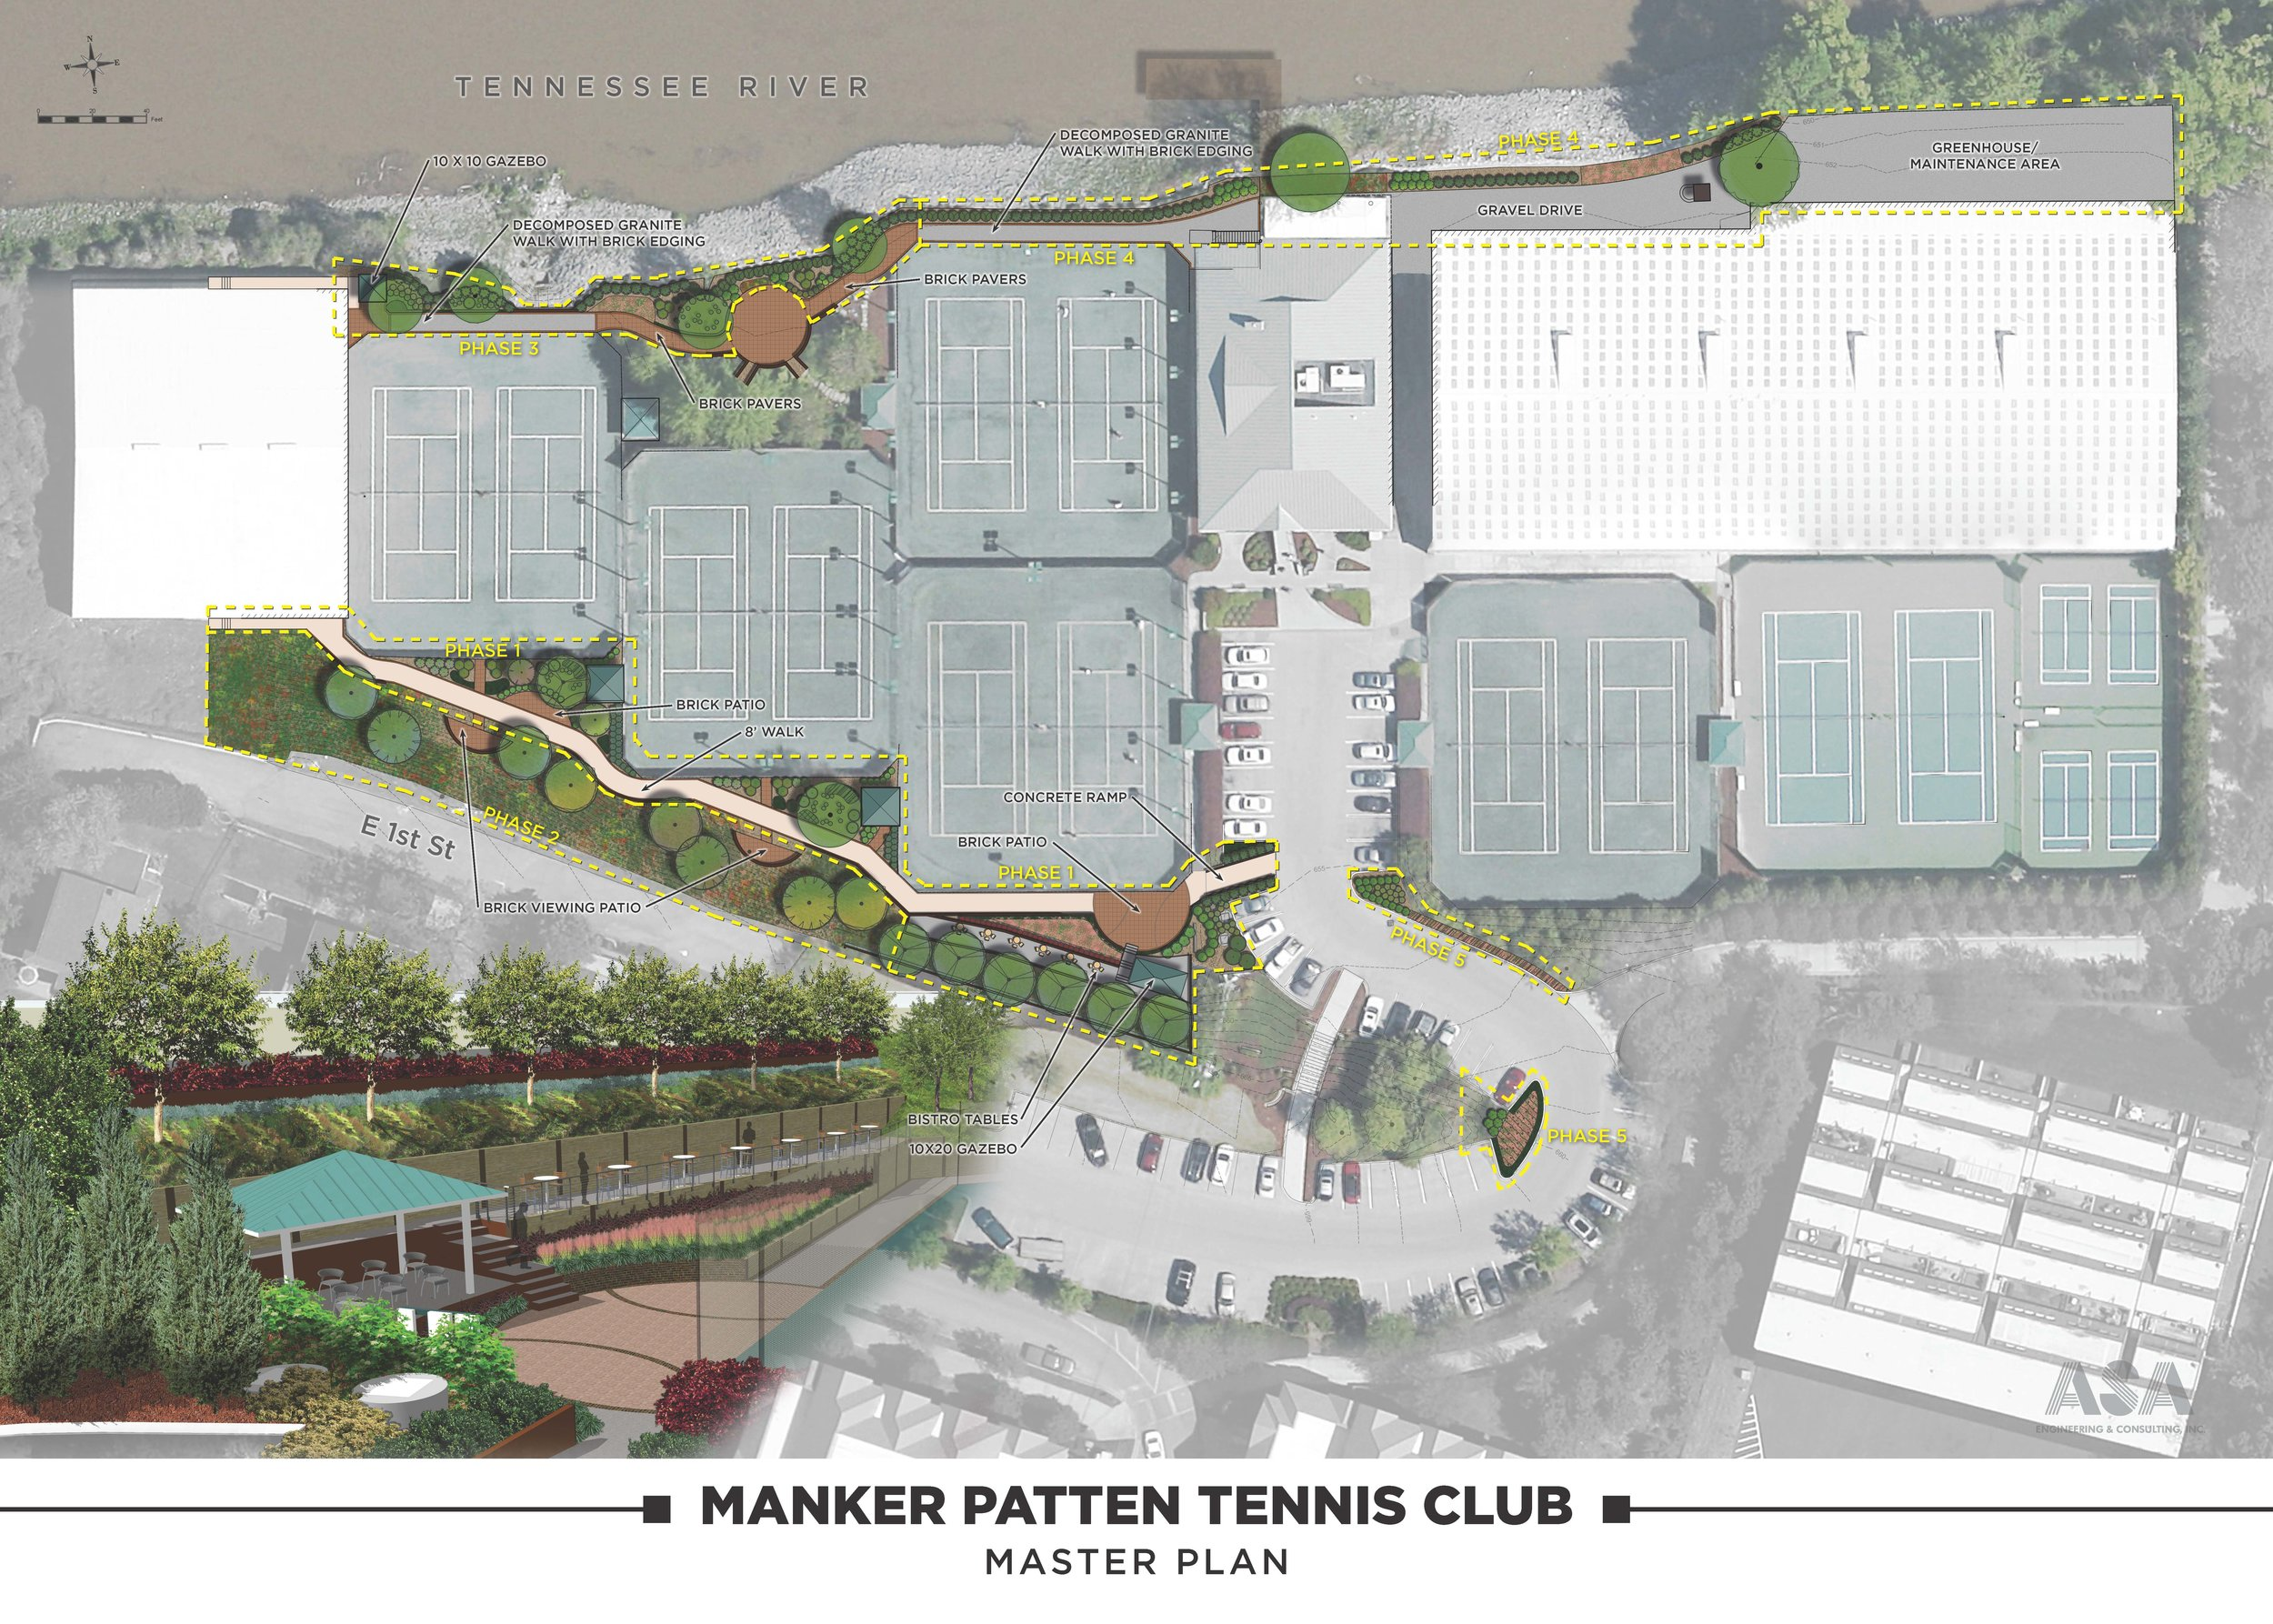 2014-12-03_Manker Patten Final Master Plan_Annotated.jpg